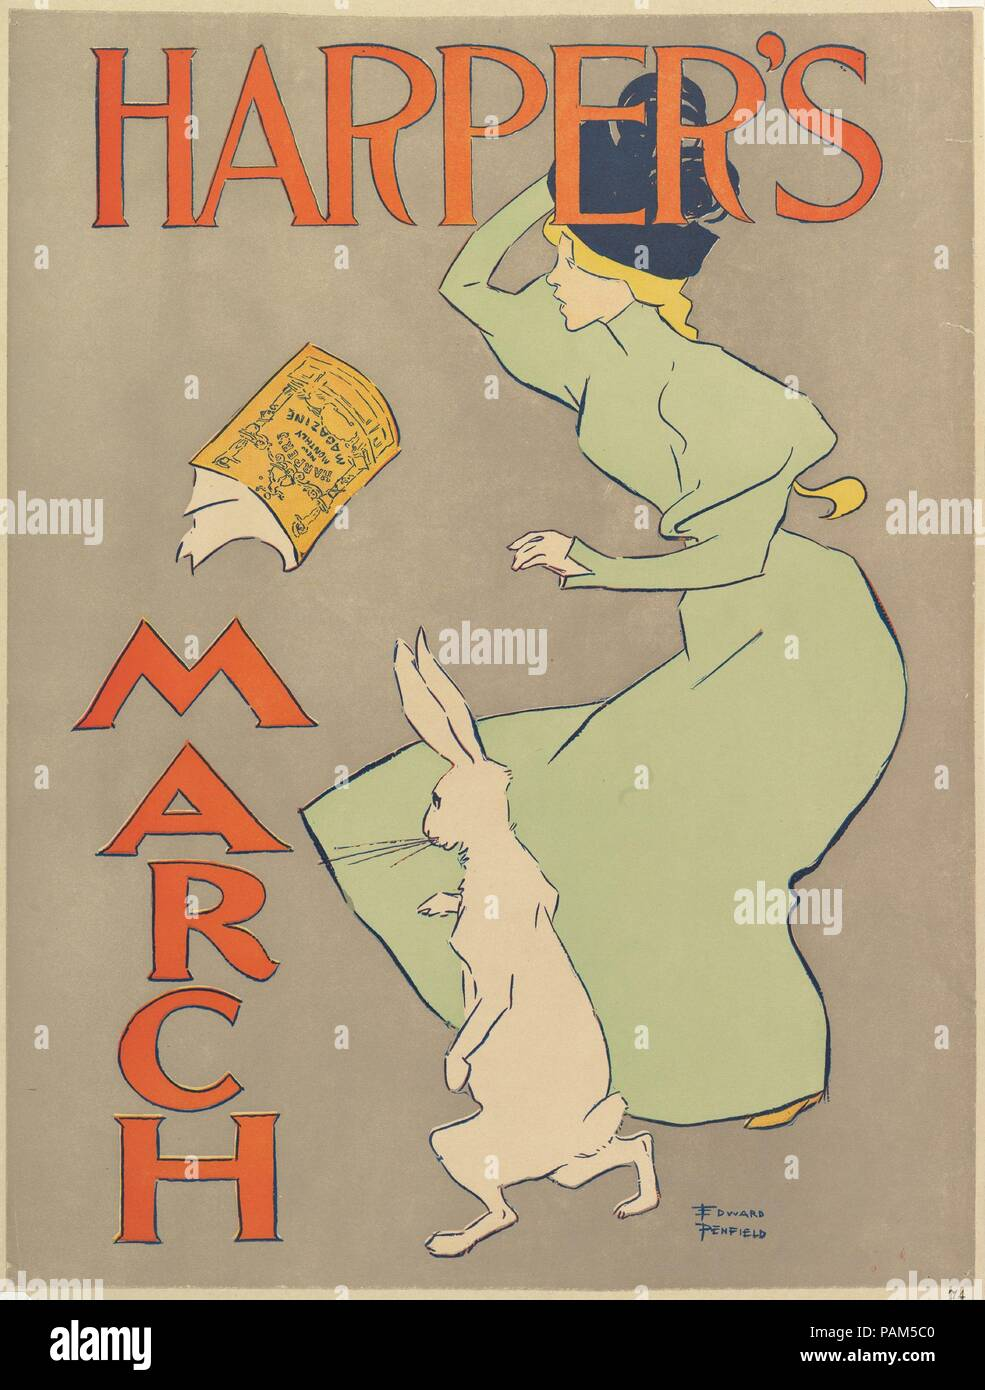 Harper's: March. Artist: Edward Penfield (American, Brooklyn, New York 1866-1925 Beacon, New York). Dimensions: Sheet: 19 1/4 × 13 13/16 in. (48.9 × 35.1 cm). Publisher: Harper and Brothers, Publishers. Date: 1895. Museum: Metropolitan Museum of Art, New York, USA. - Stock Image